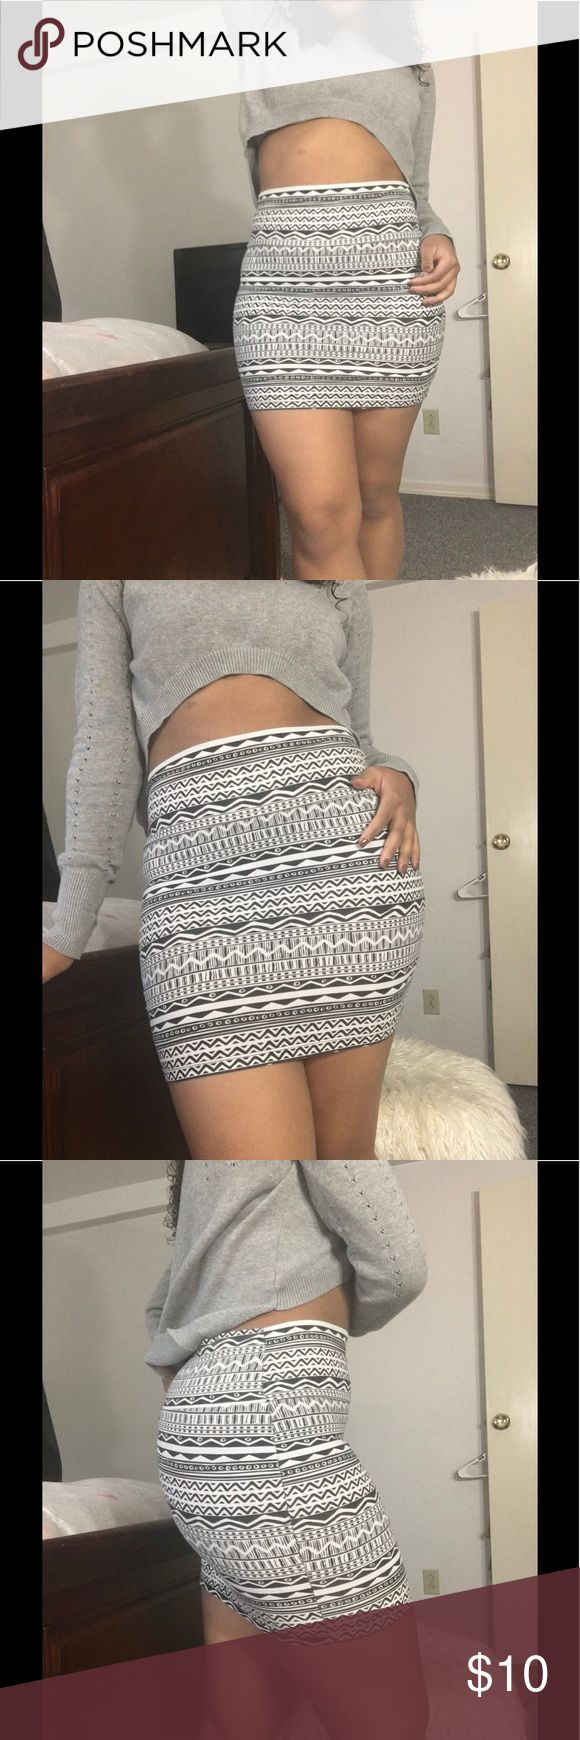 Tribal Skirt Black/white tribal skirt. Can be used as a skirt or tube top. Your choice😊 Skirts Mini